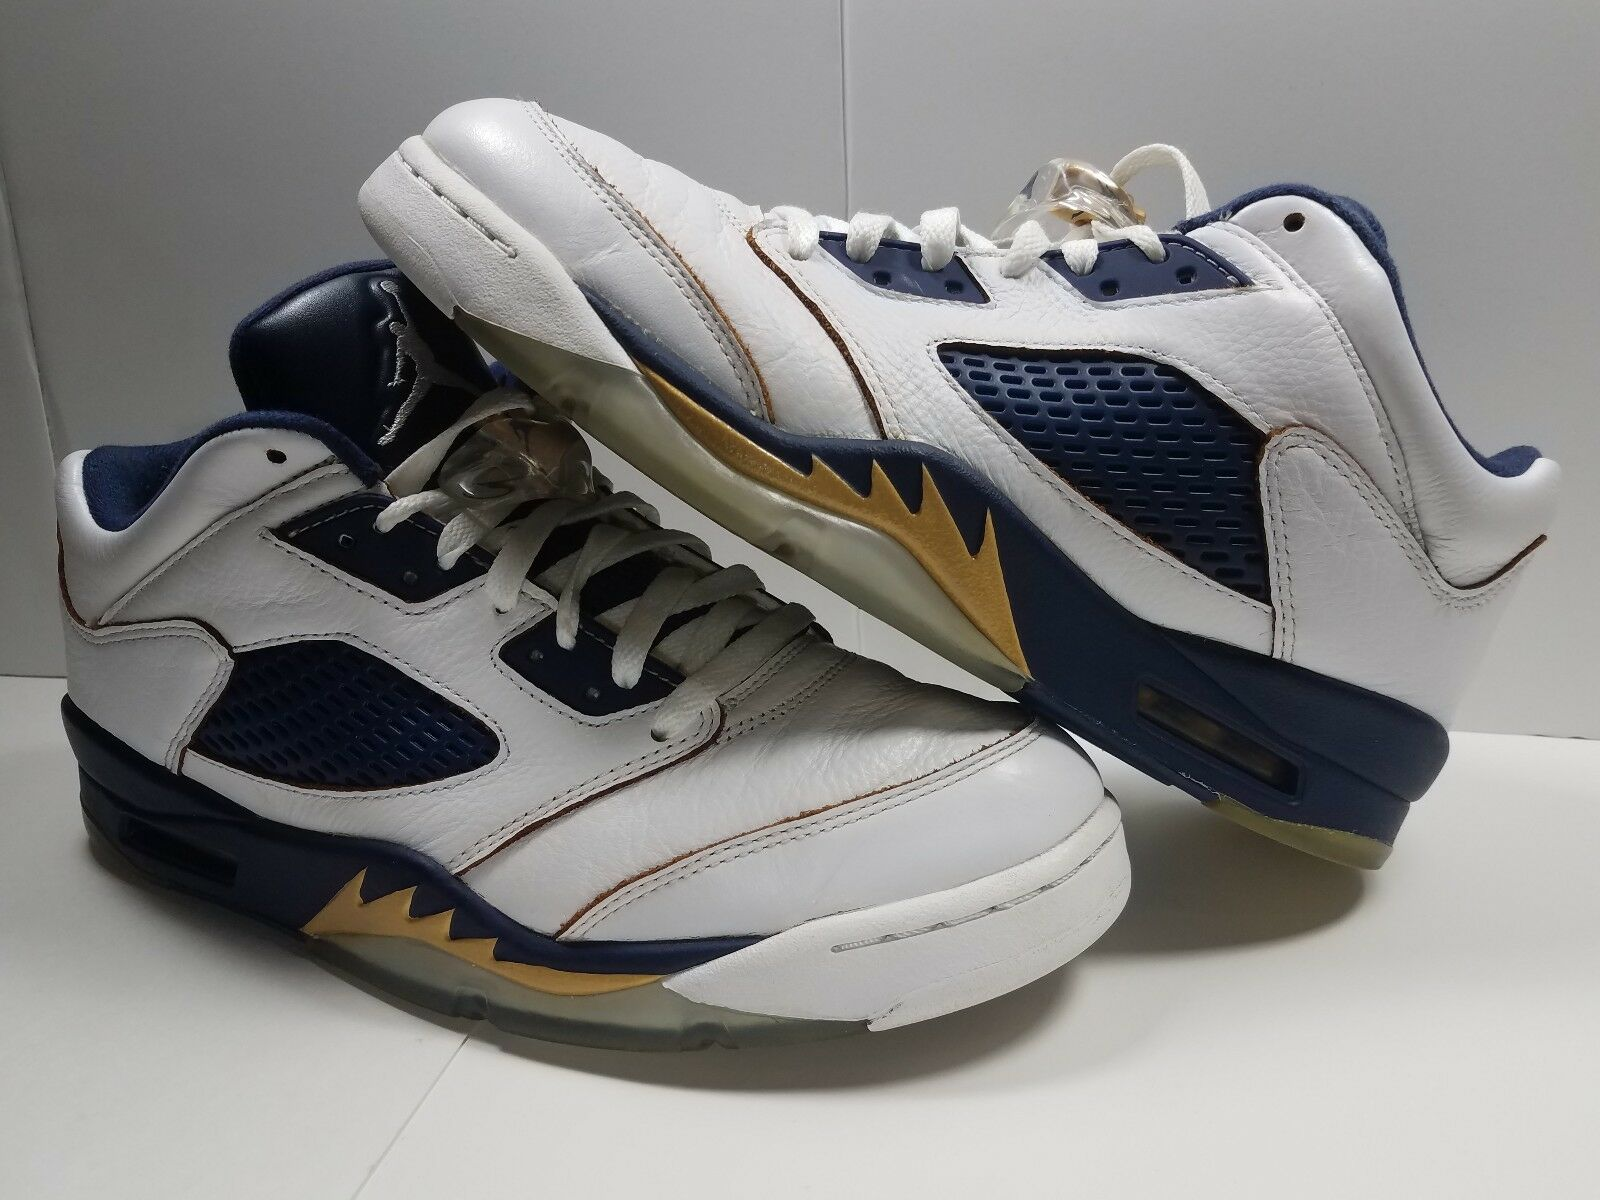 100% authentic 0bef1 d9b85 Jordan 5 V Low  Dunk  Dunk  Dunk From Above  White Met gold